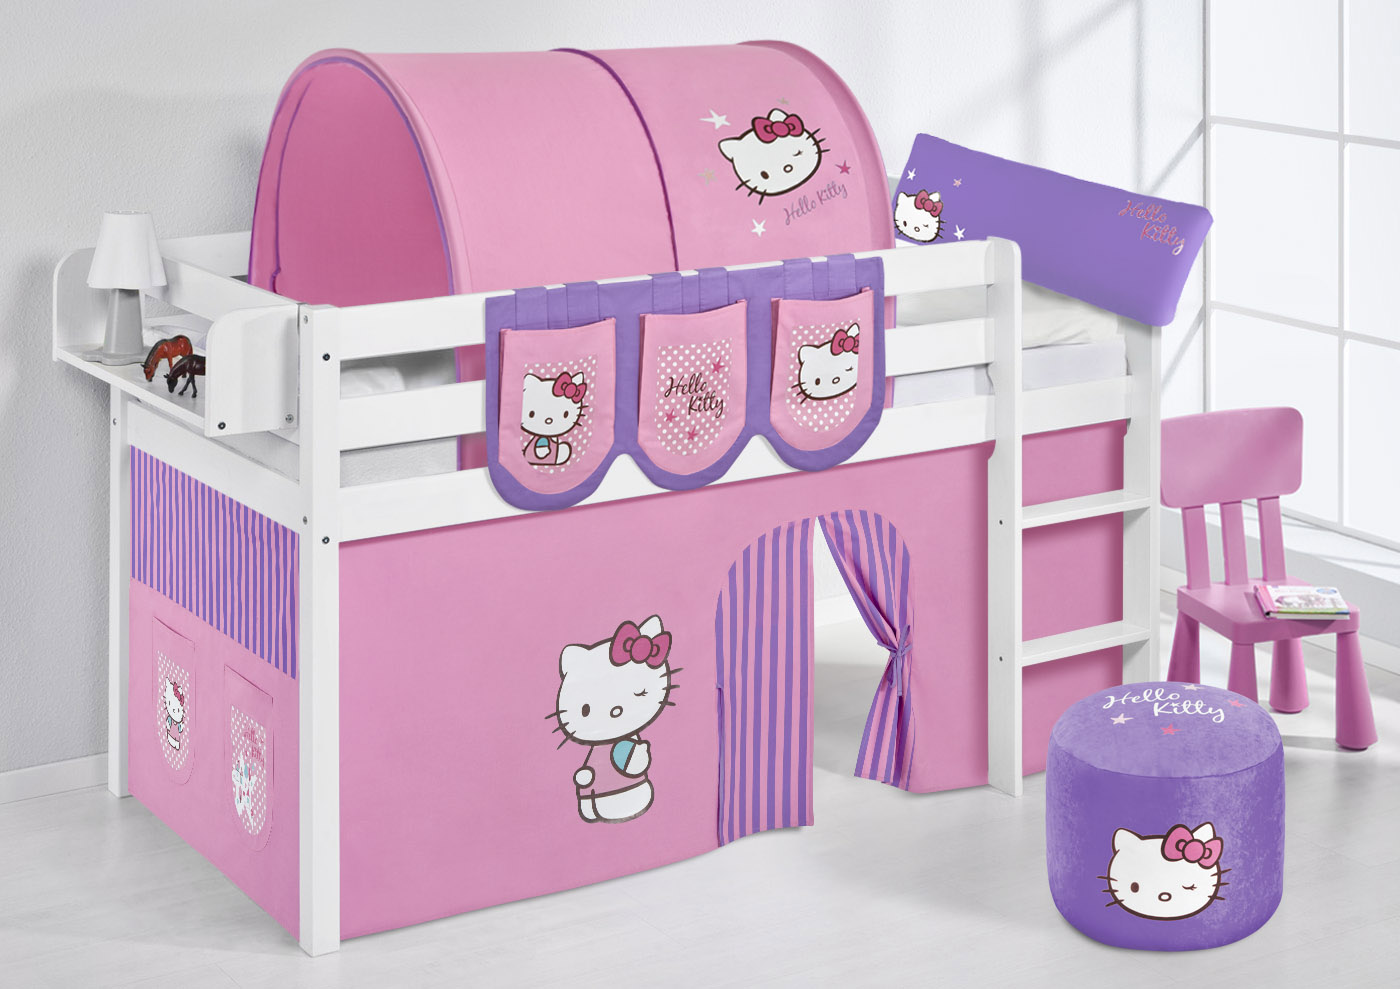 spielbett hochbett kinderbett kinder bett jelle vorhang nach wahl ebay. Black Bedroom Furniture Sets. Home Design Ideas